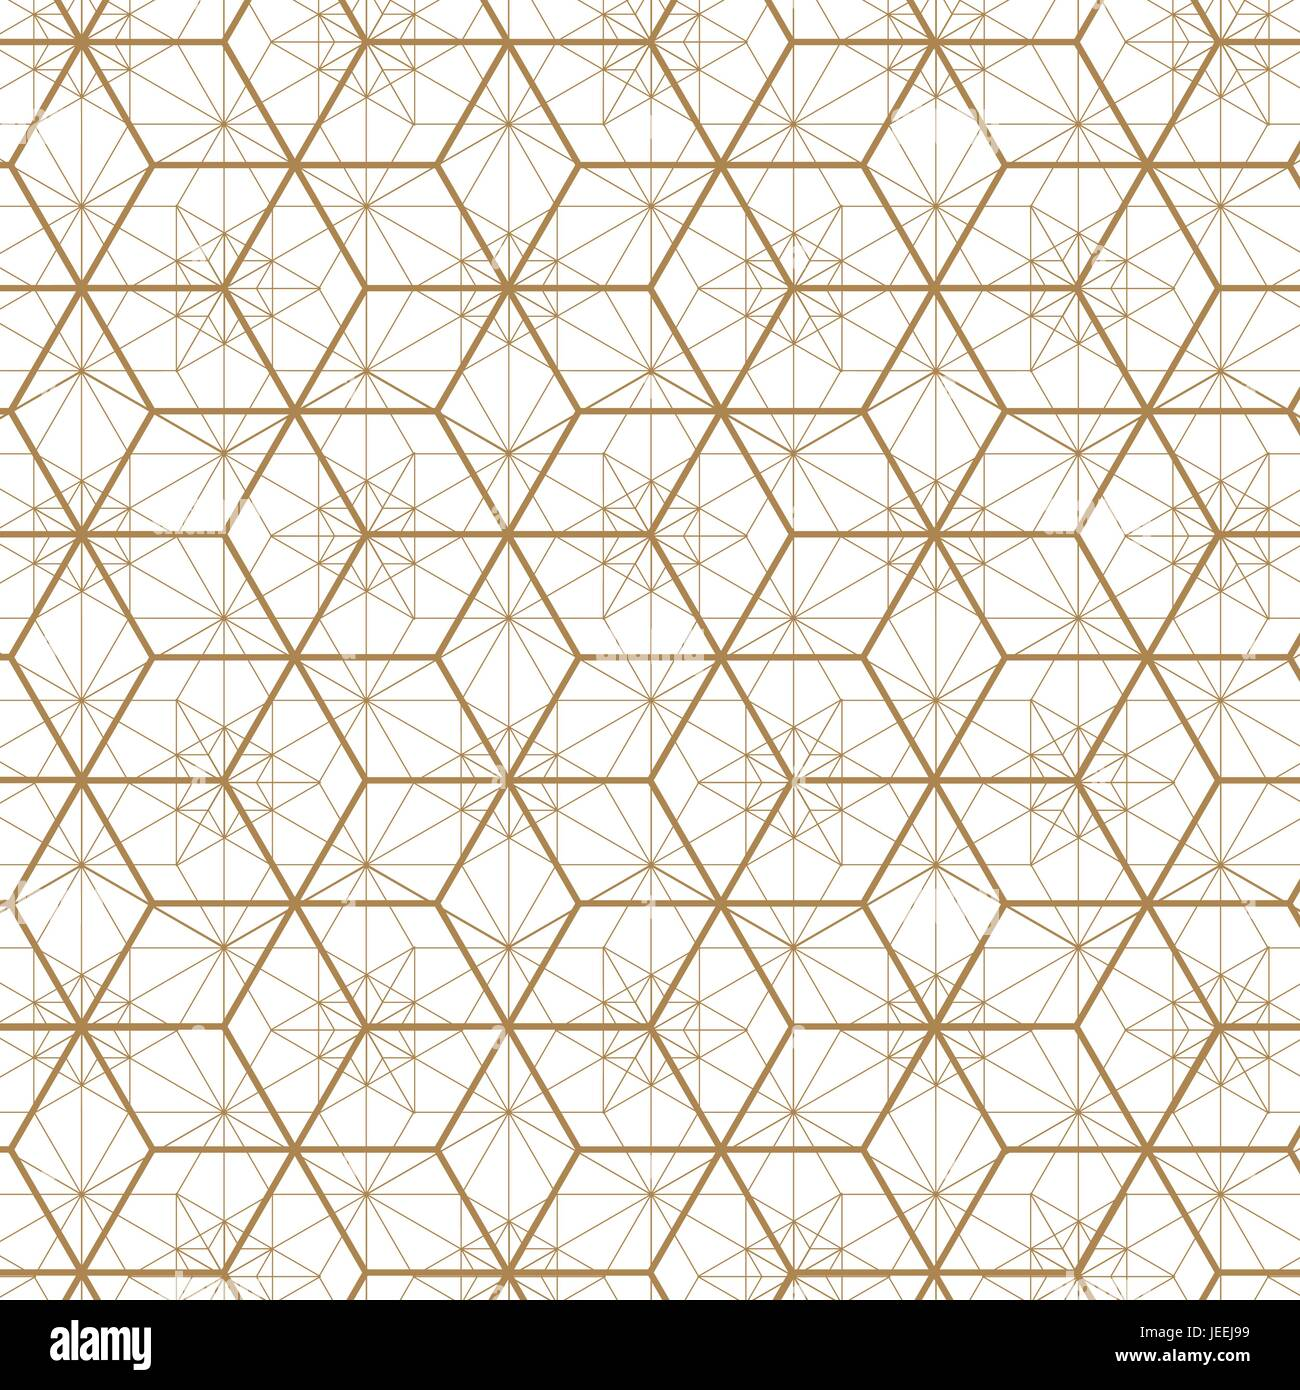 Gold Geometric Vector.